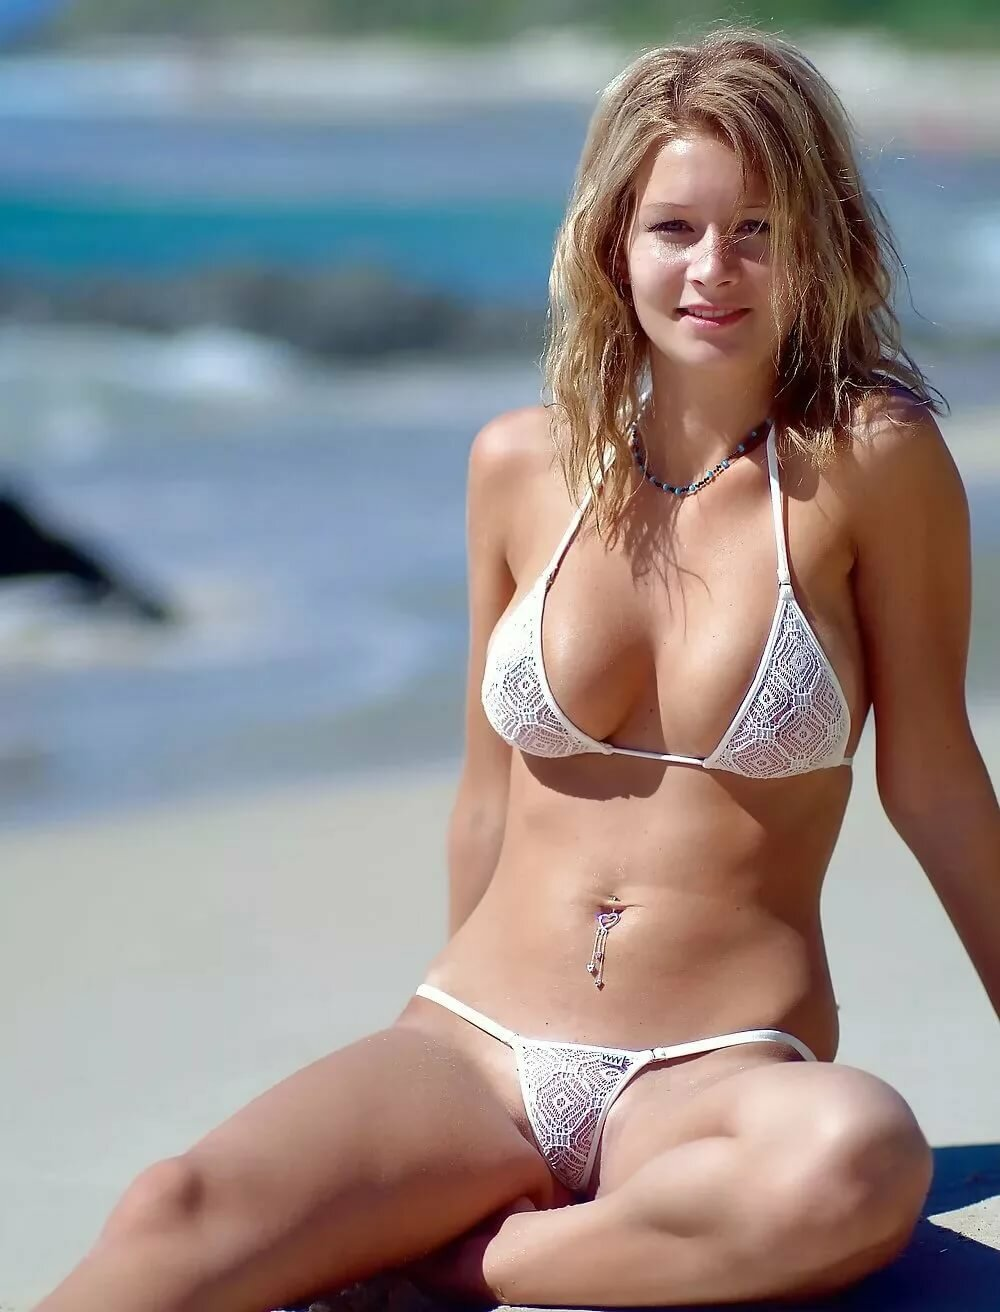 Bikini in small woman